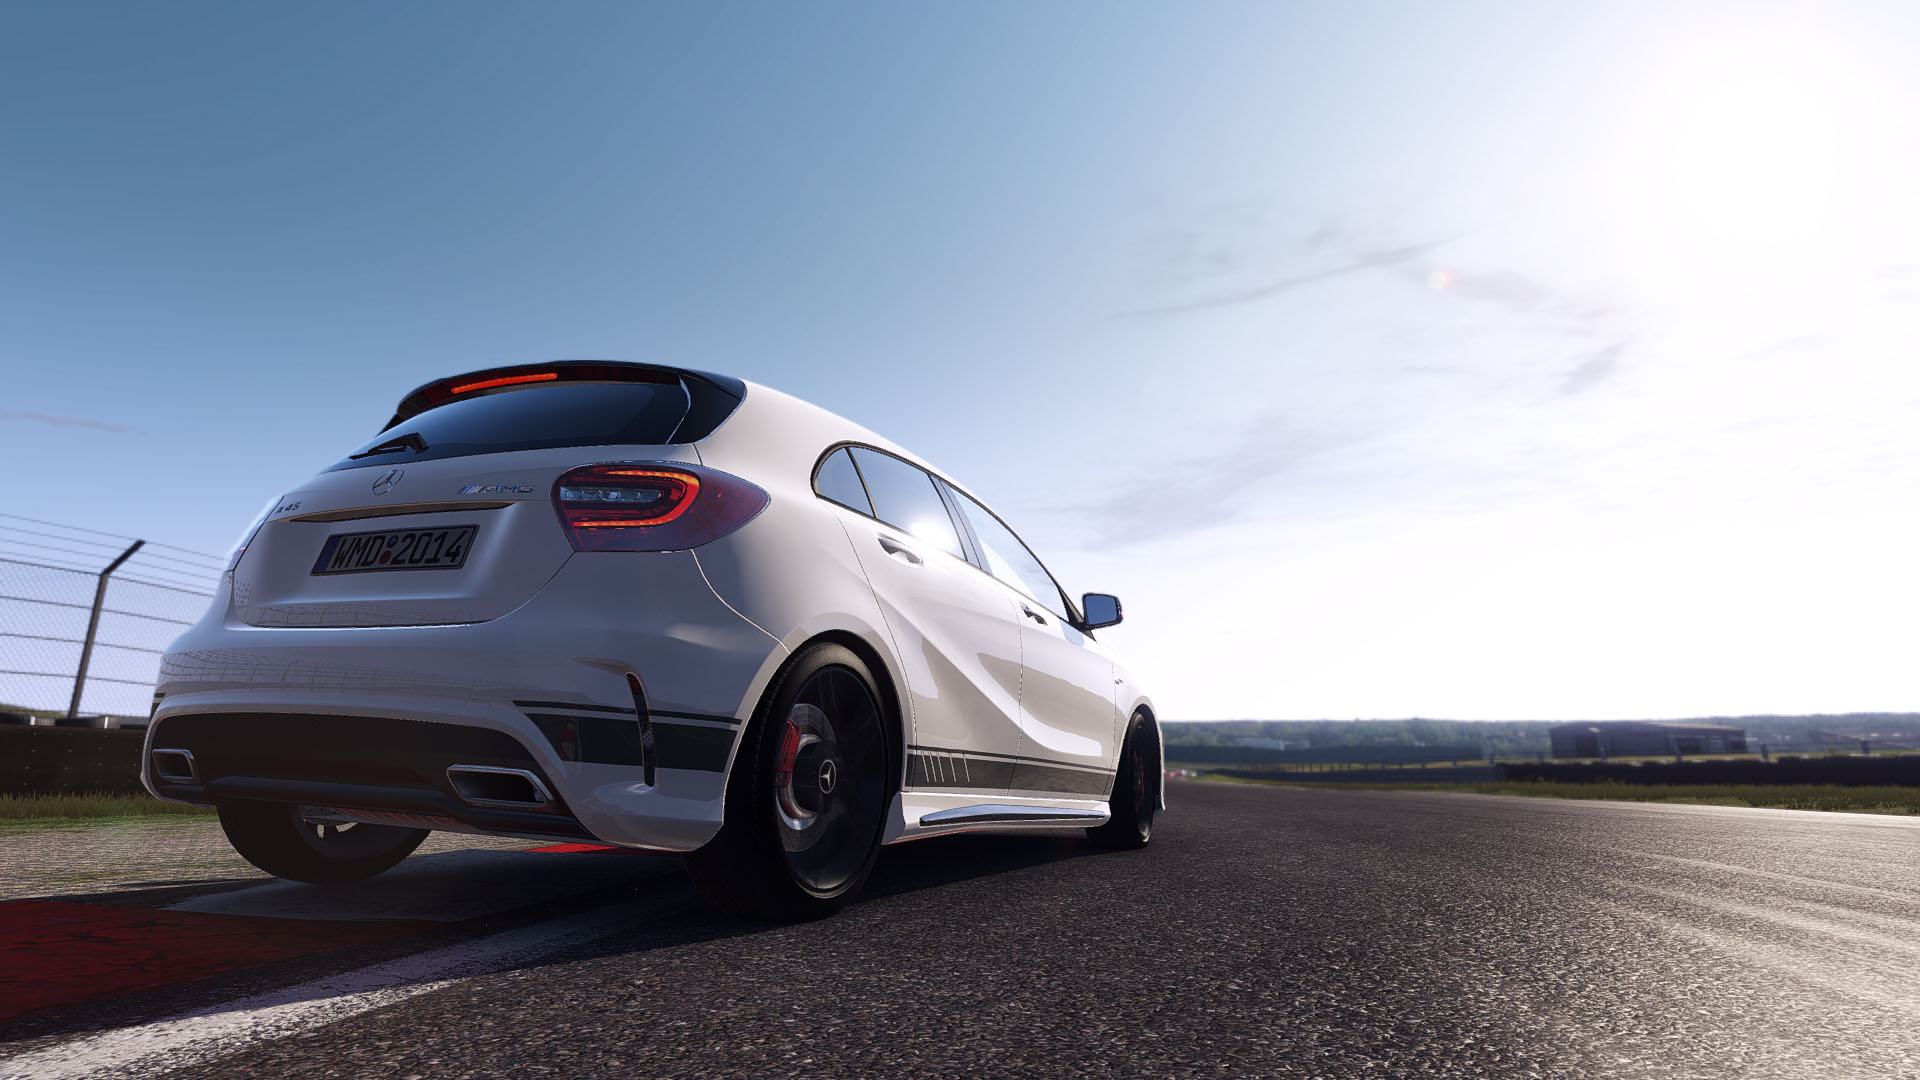 New Project Cars Screens Shows Few Cars, Graphics and Car ...